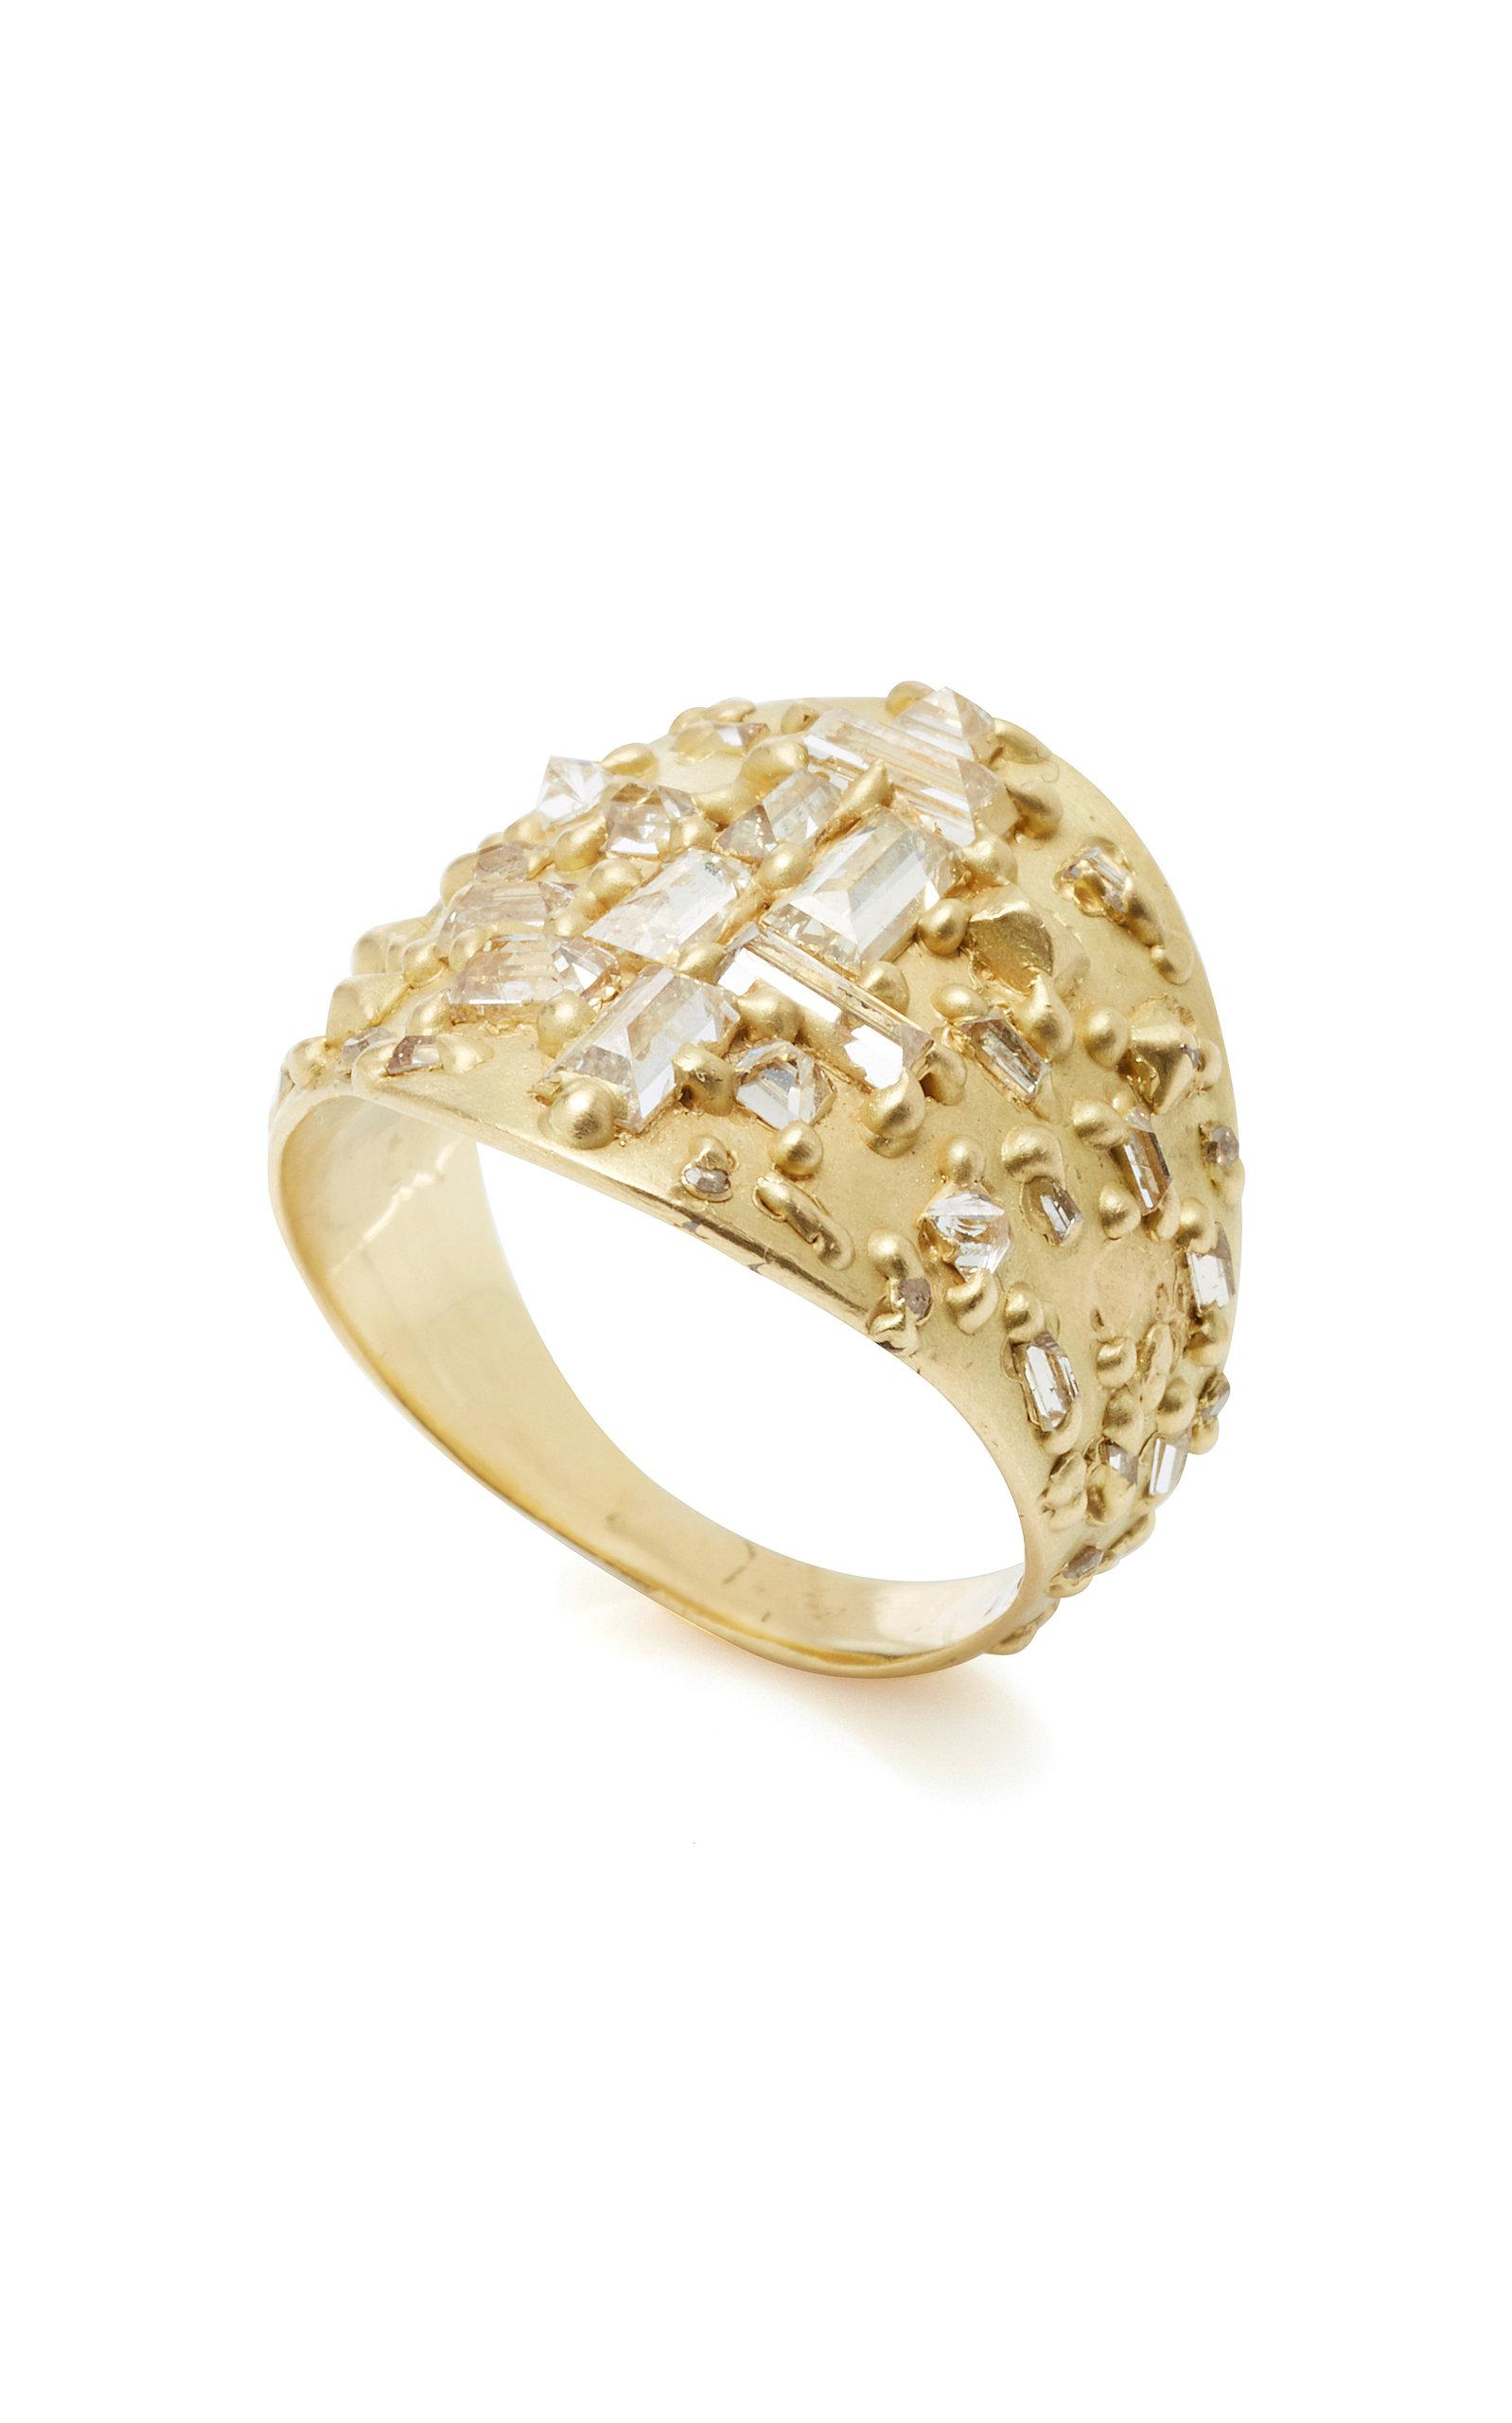 kind in shield jewelry ring one gallery a polly wales lyst of gold mondrian diamond